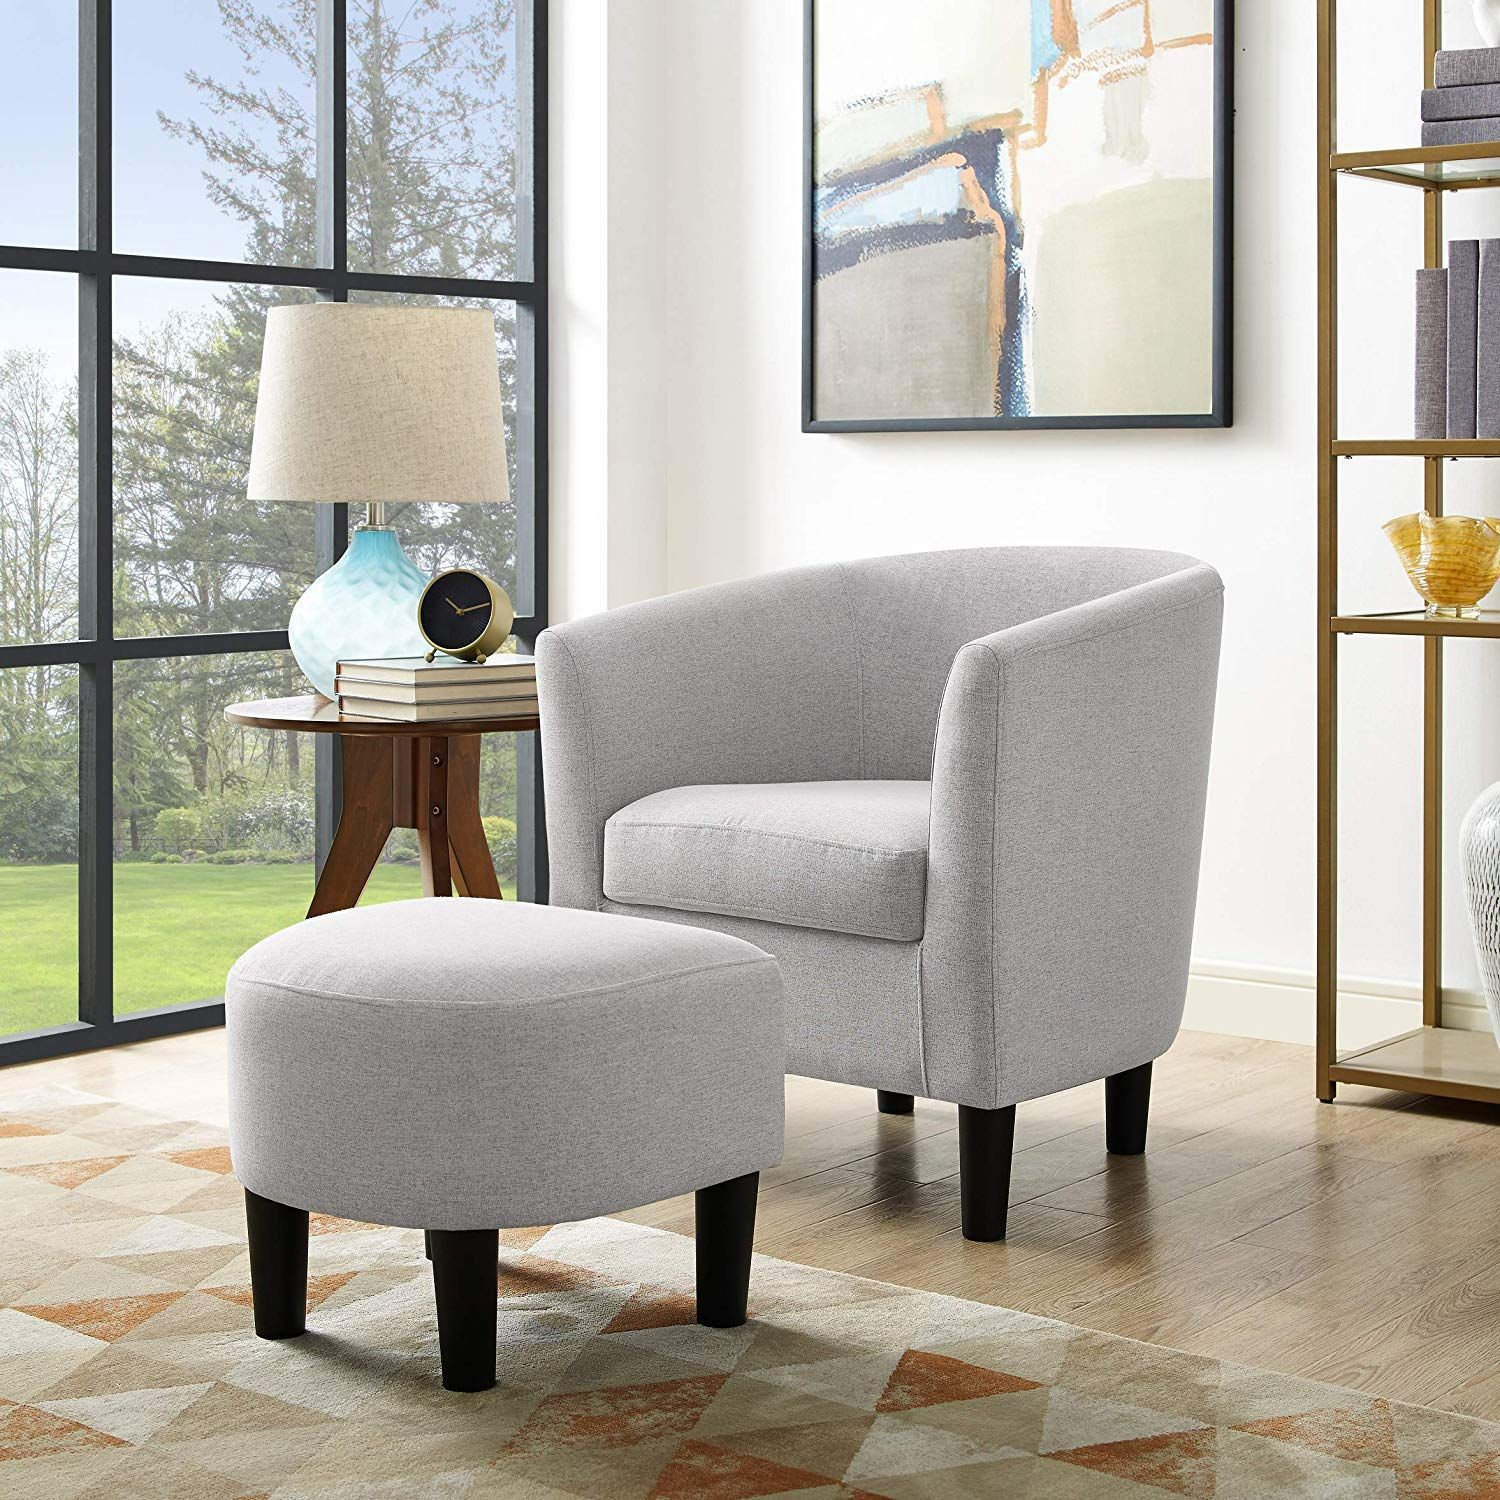 Dazone modern accent chair upholstered comfy arm chair